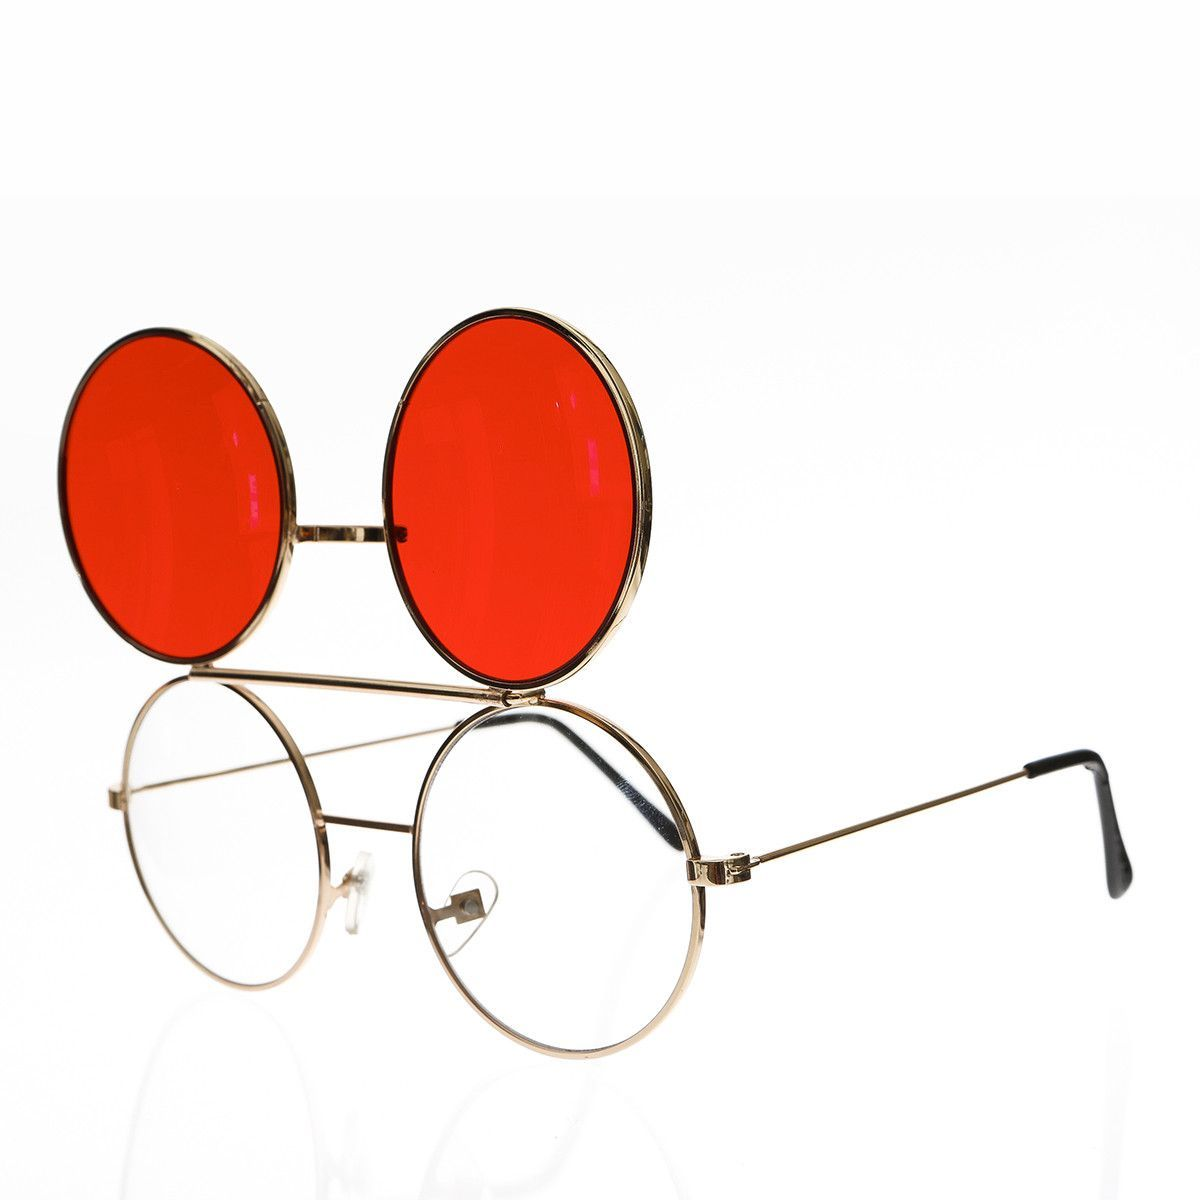 Retro Flip Up Glasses with Colored Tinted Lenses - Flippy | Products